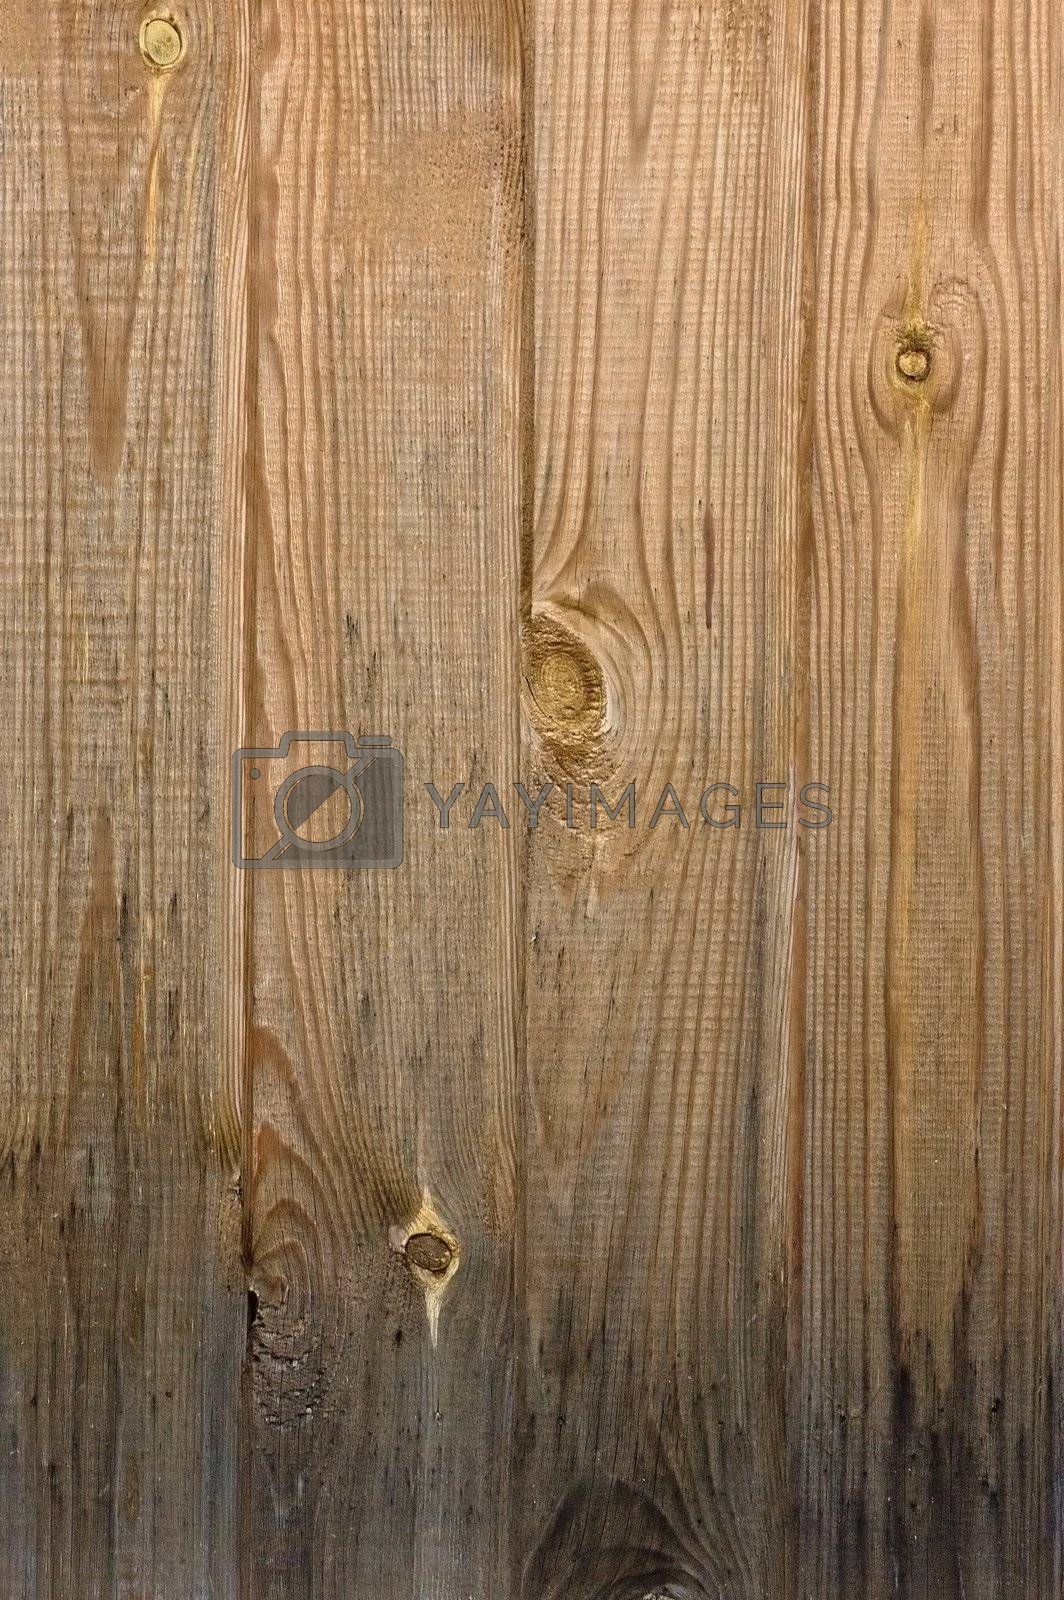 Royalty free image of Pinewood texture by dtma